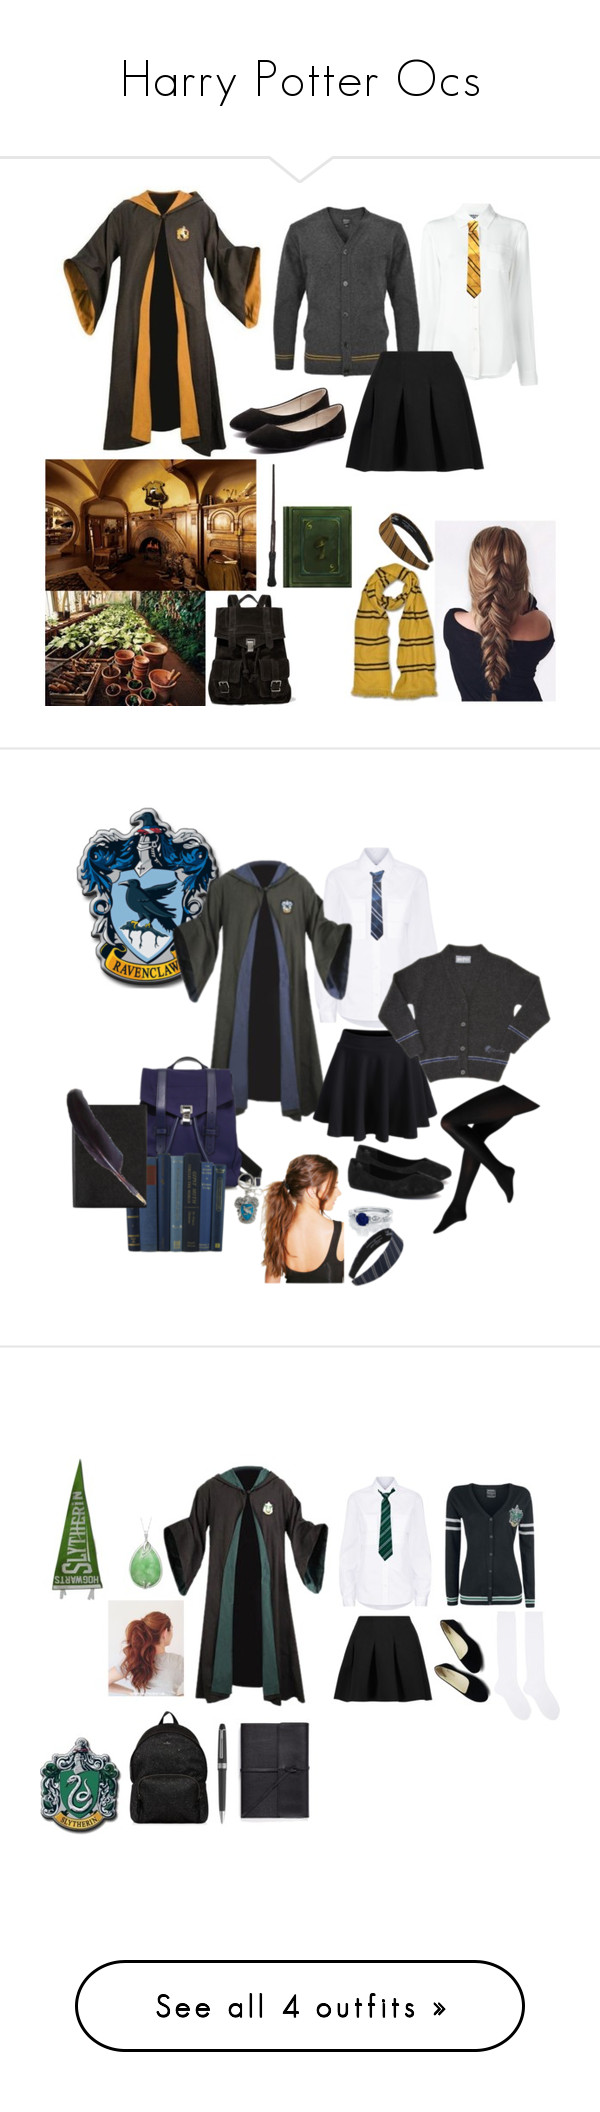 """Harry Potter Ocs"" by gladers4ever on Polyvore featuring Moschino, T By Alexander Wang, Verali, Proenza Schouler, Public School, Jellypop, WithChic, Boohoo, Smythson and Warner Bros."